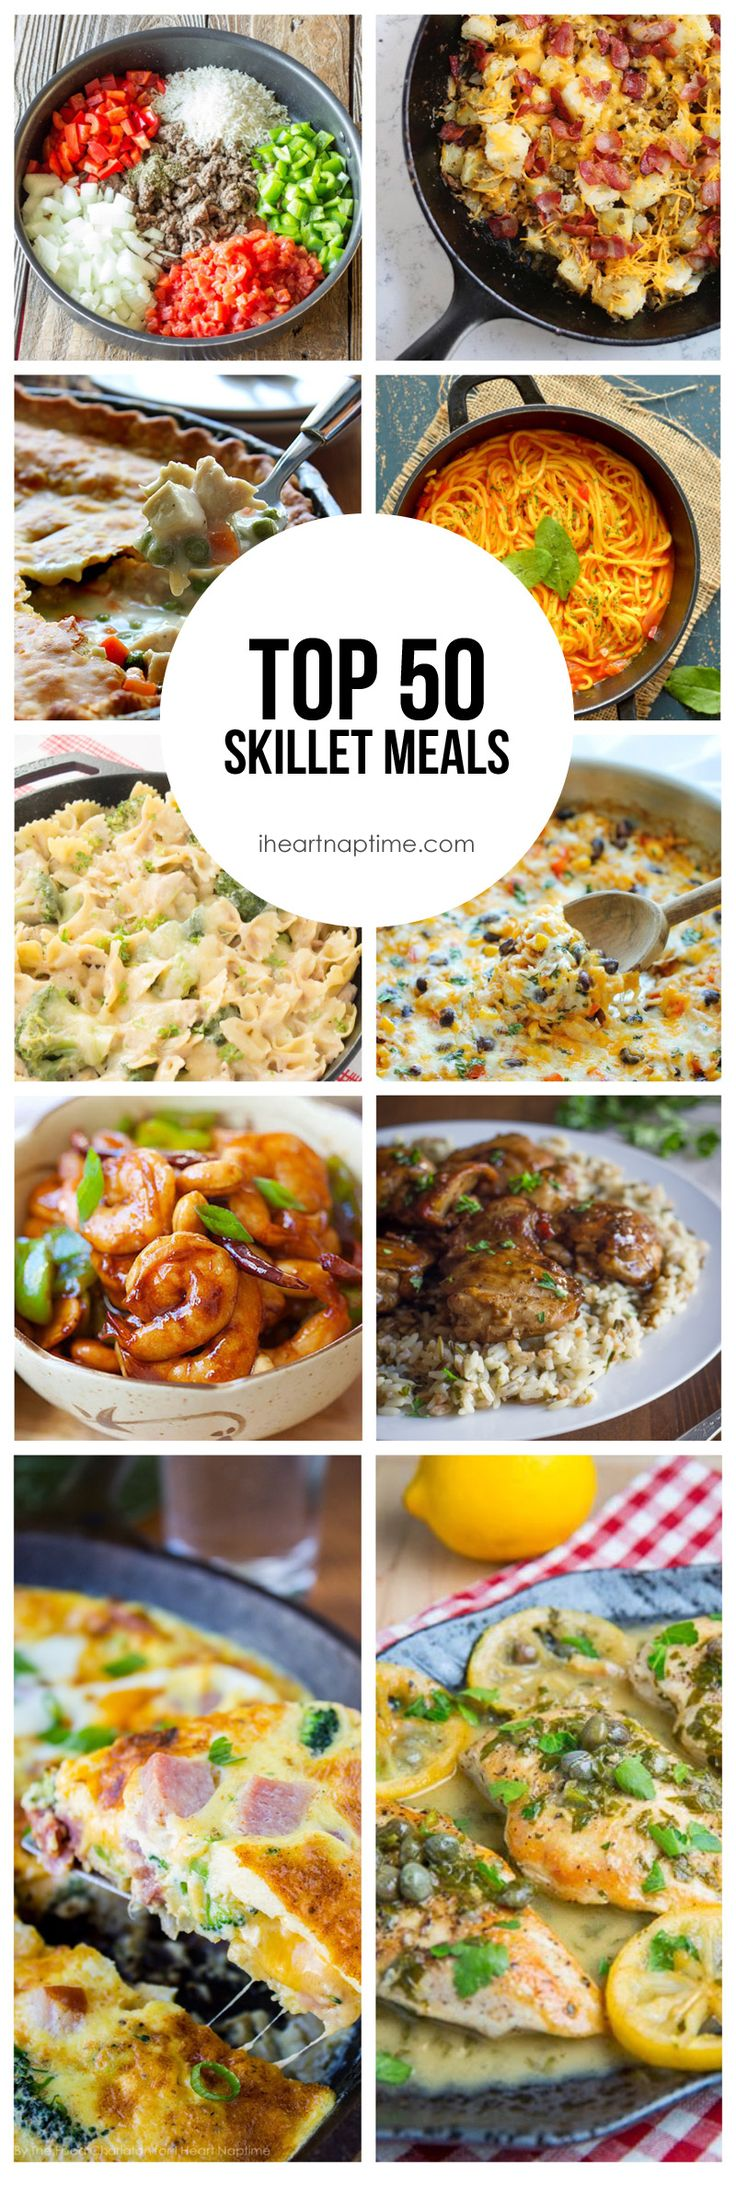 Top 50 Skillet Meals. I love one dish meals! Easy to make and clean up.